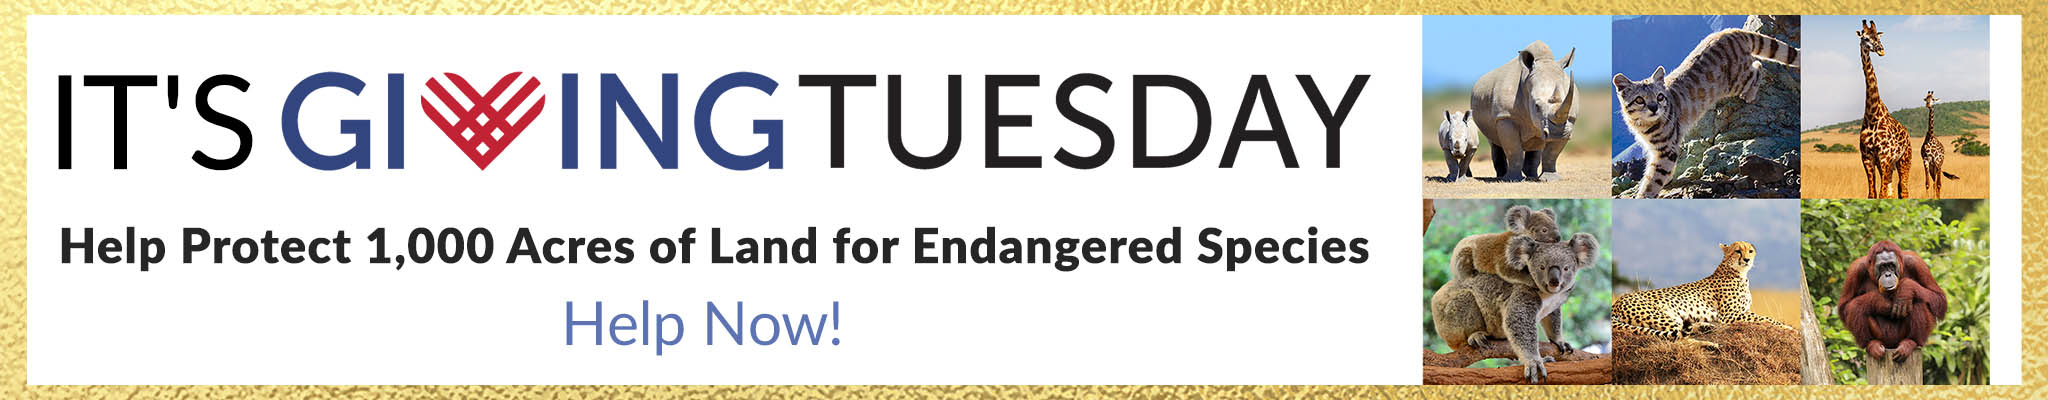 It's Giving Tuesday! Help Protect 1,000 Acres of Land for Endangered Species   Help Now